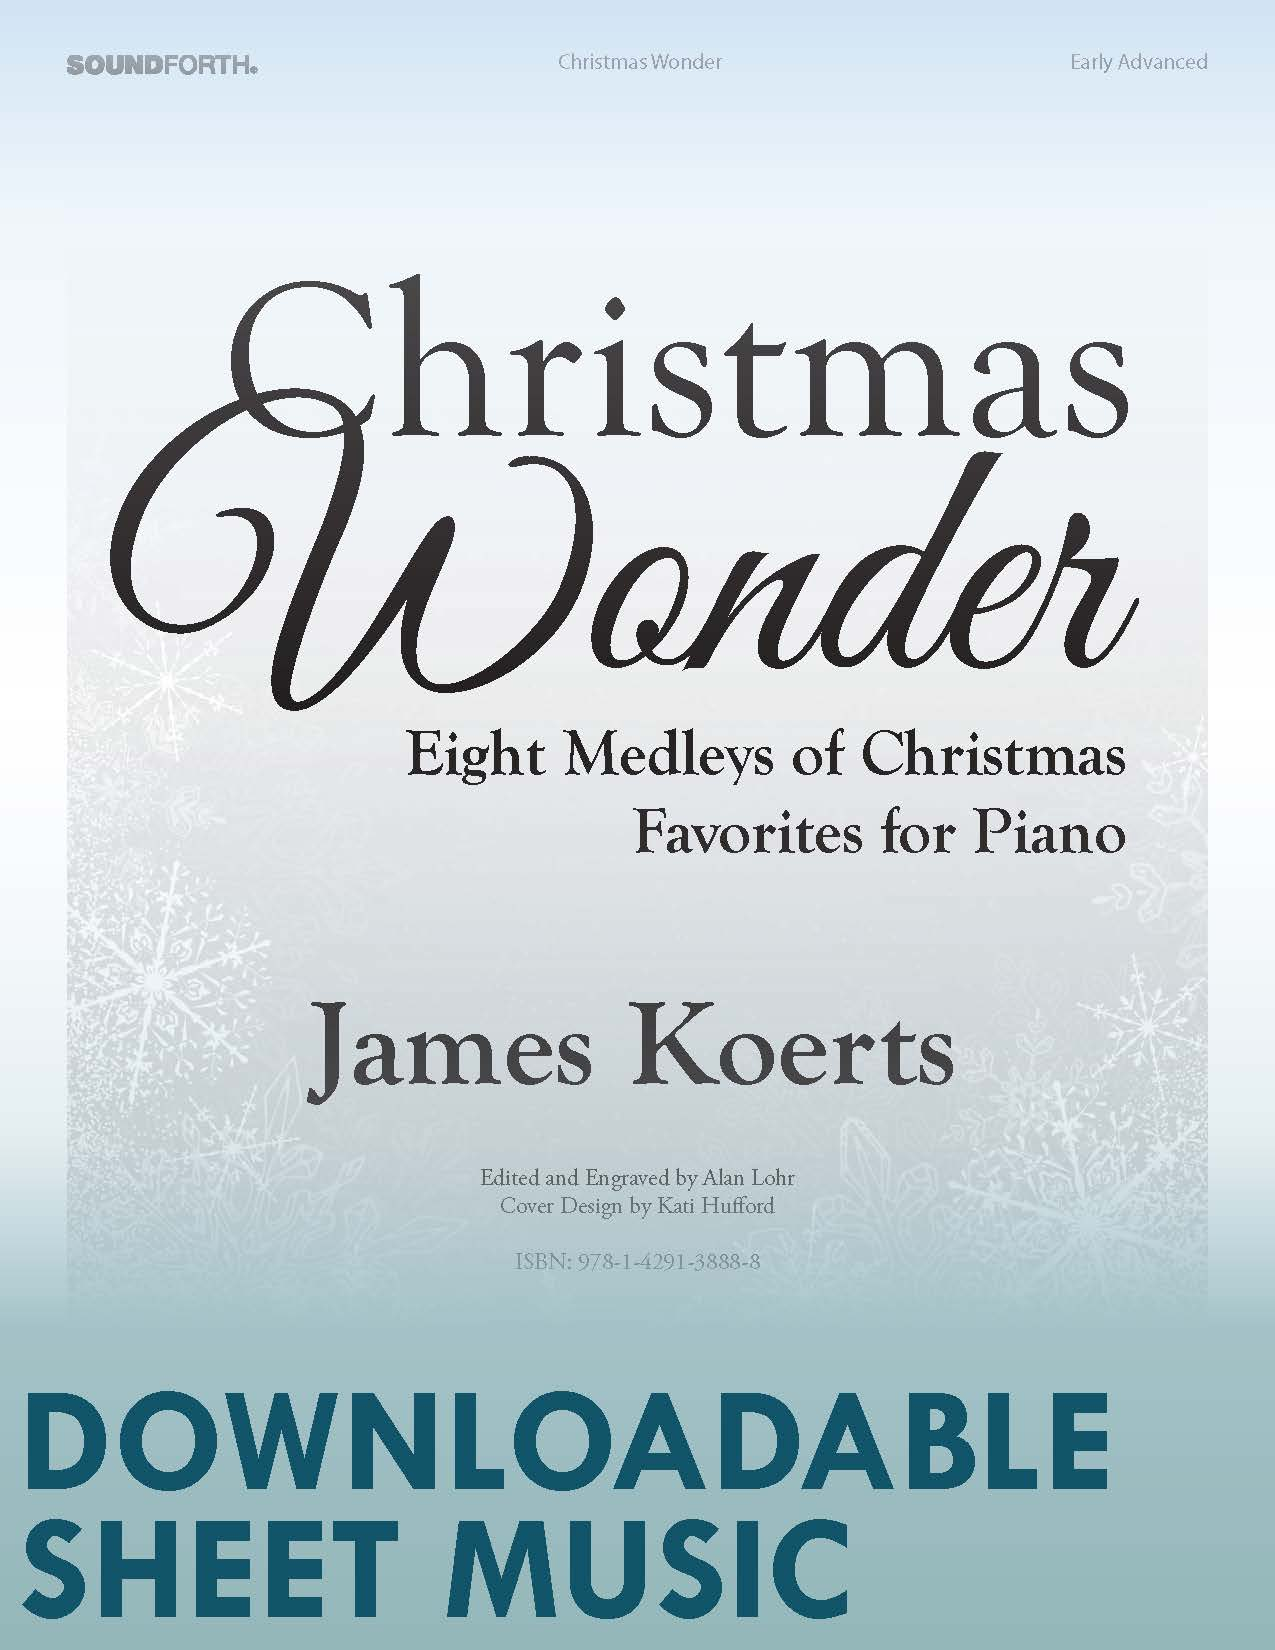 Christmas Wonder - Digital Download